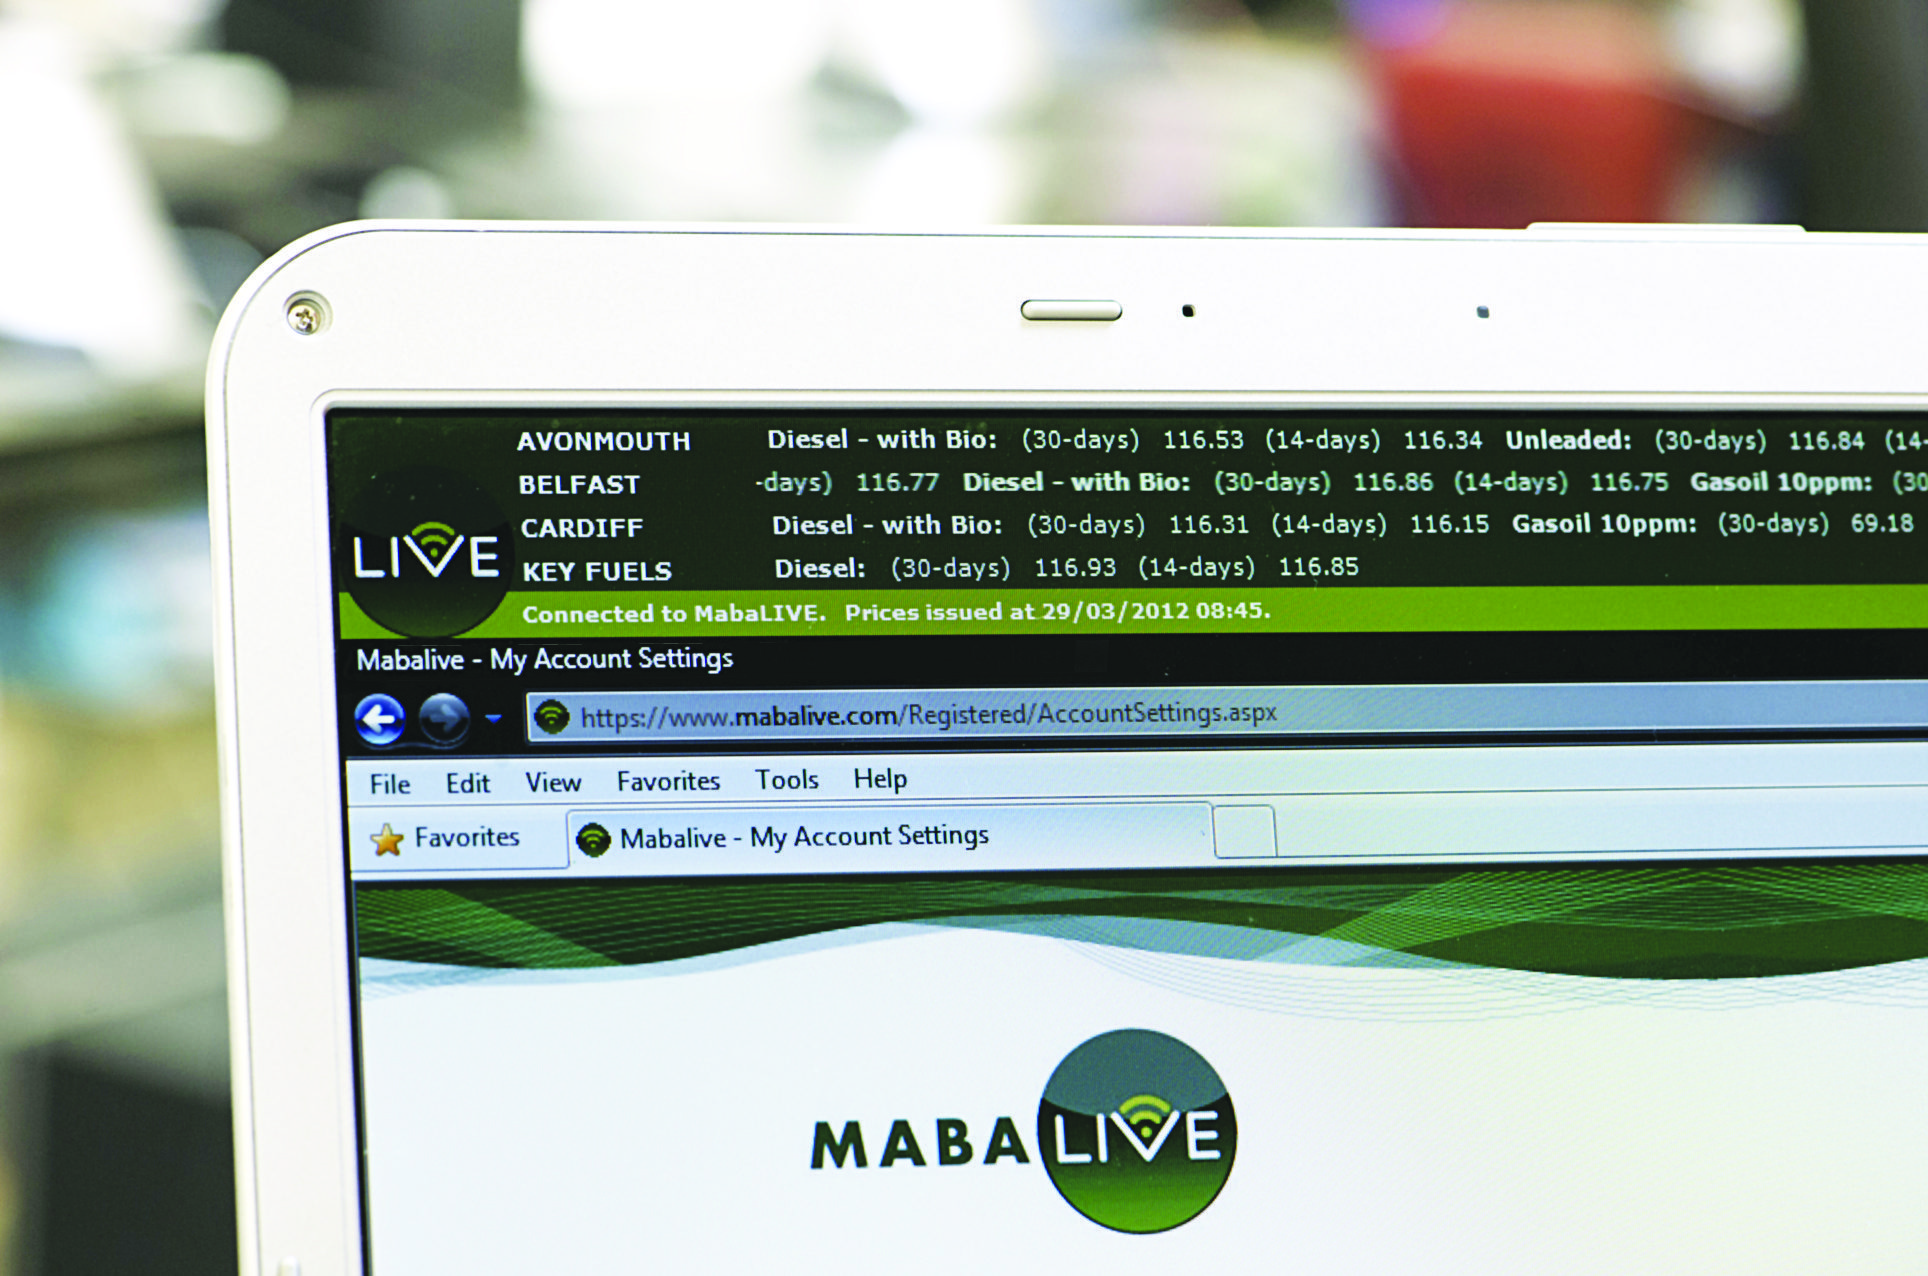 Mabanaft's MabaLIVE online price information